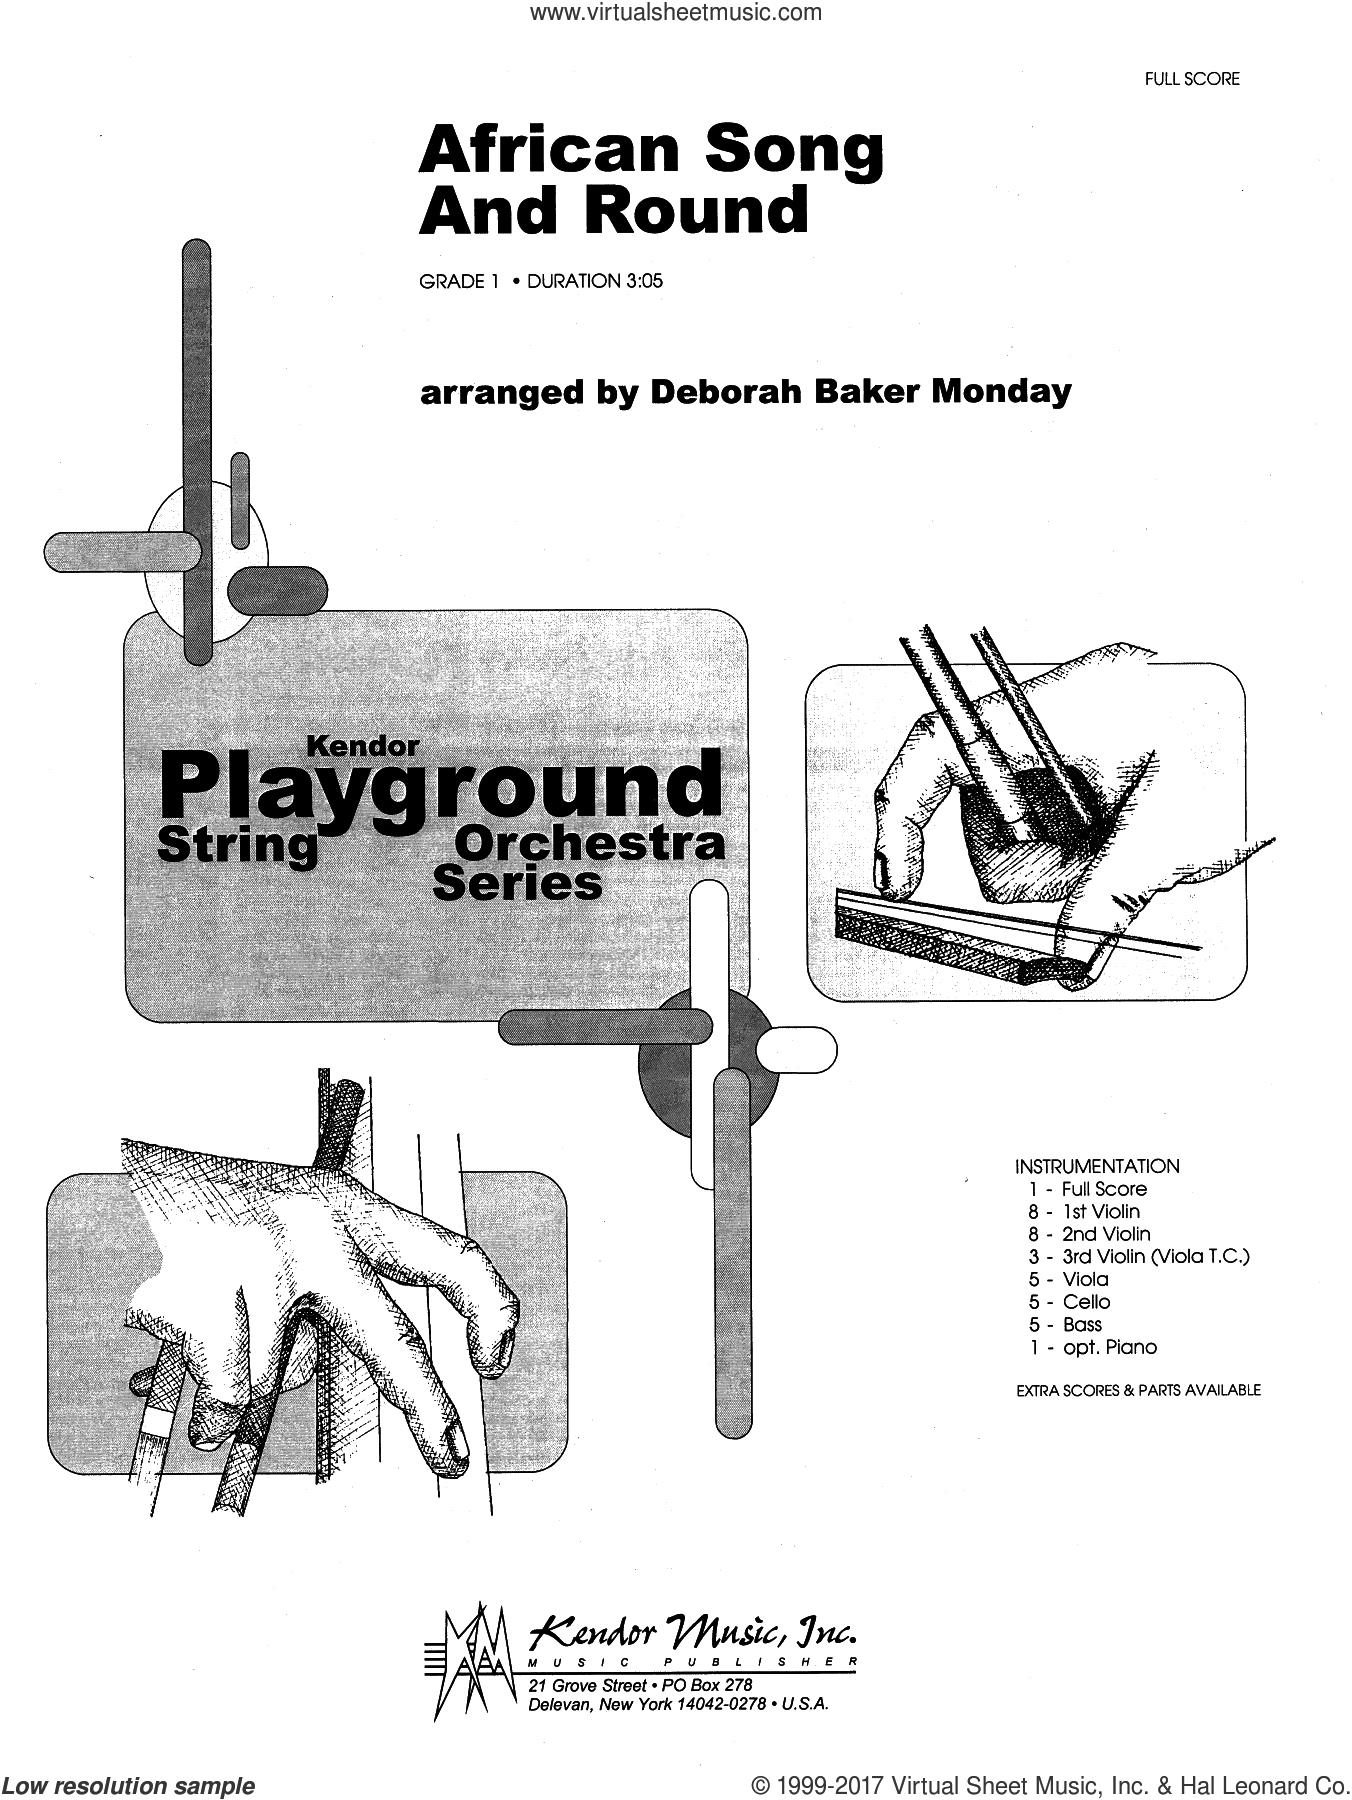 African Song And Round (COMPLETE) sheet music for orchestra by Deborah Baker Monday, intermediate skill level